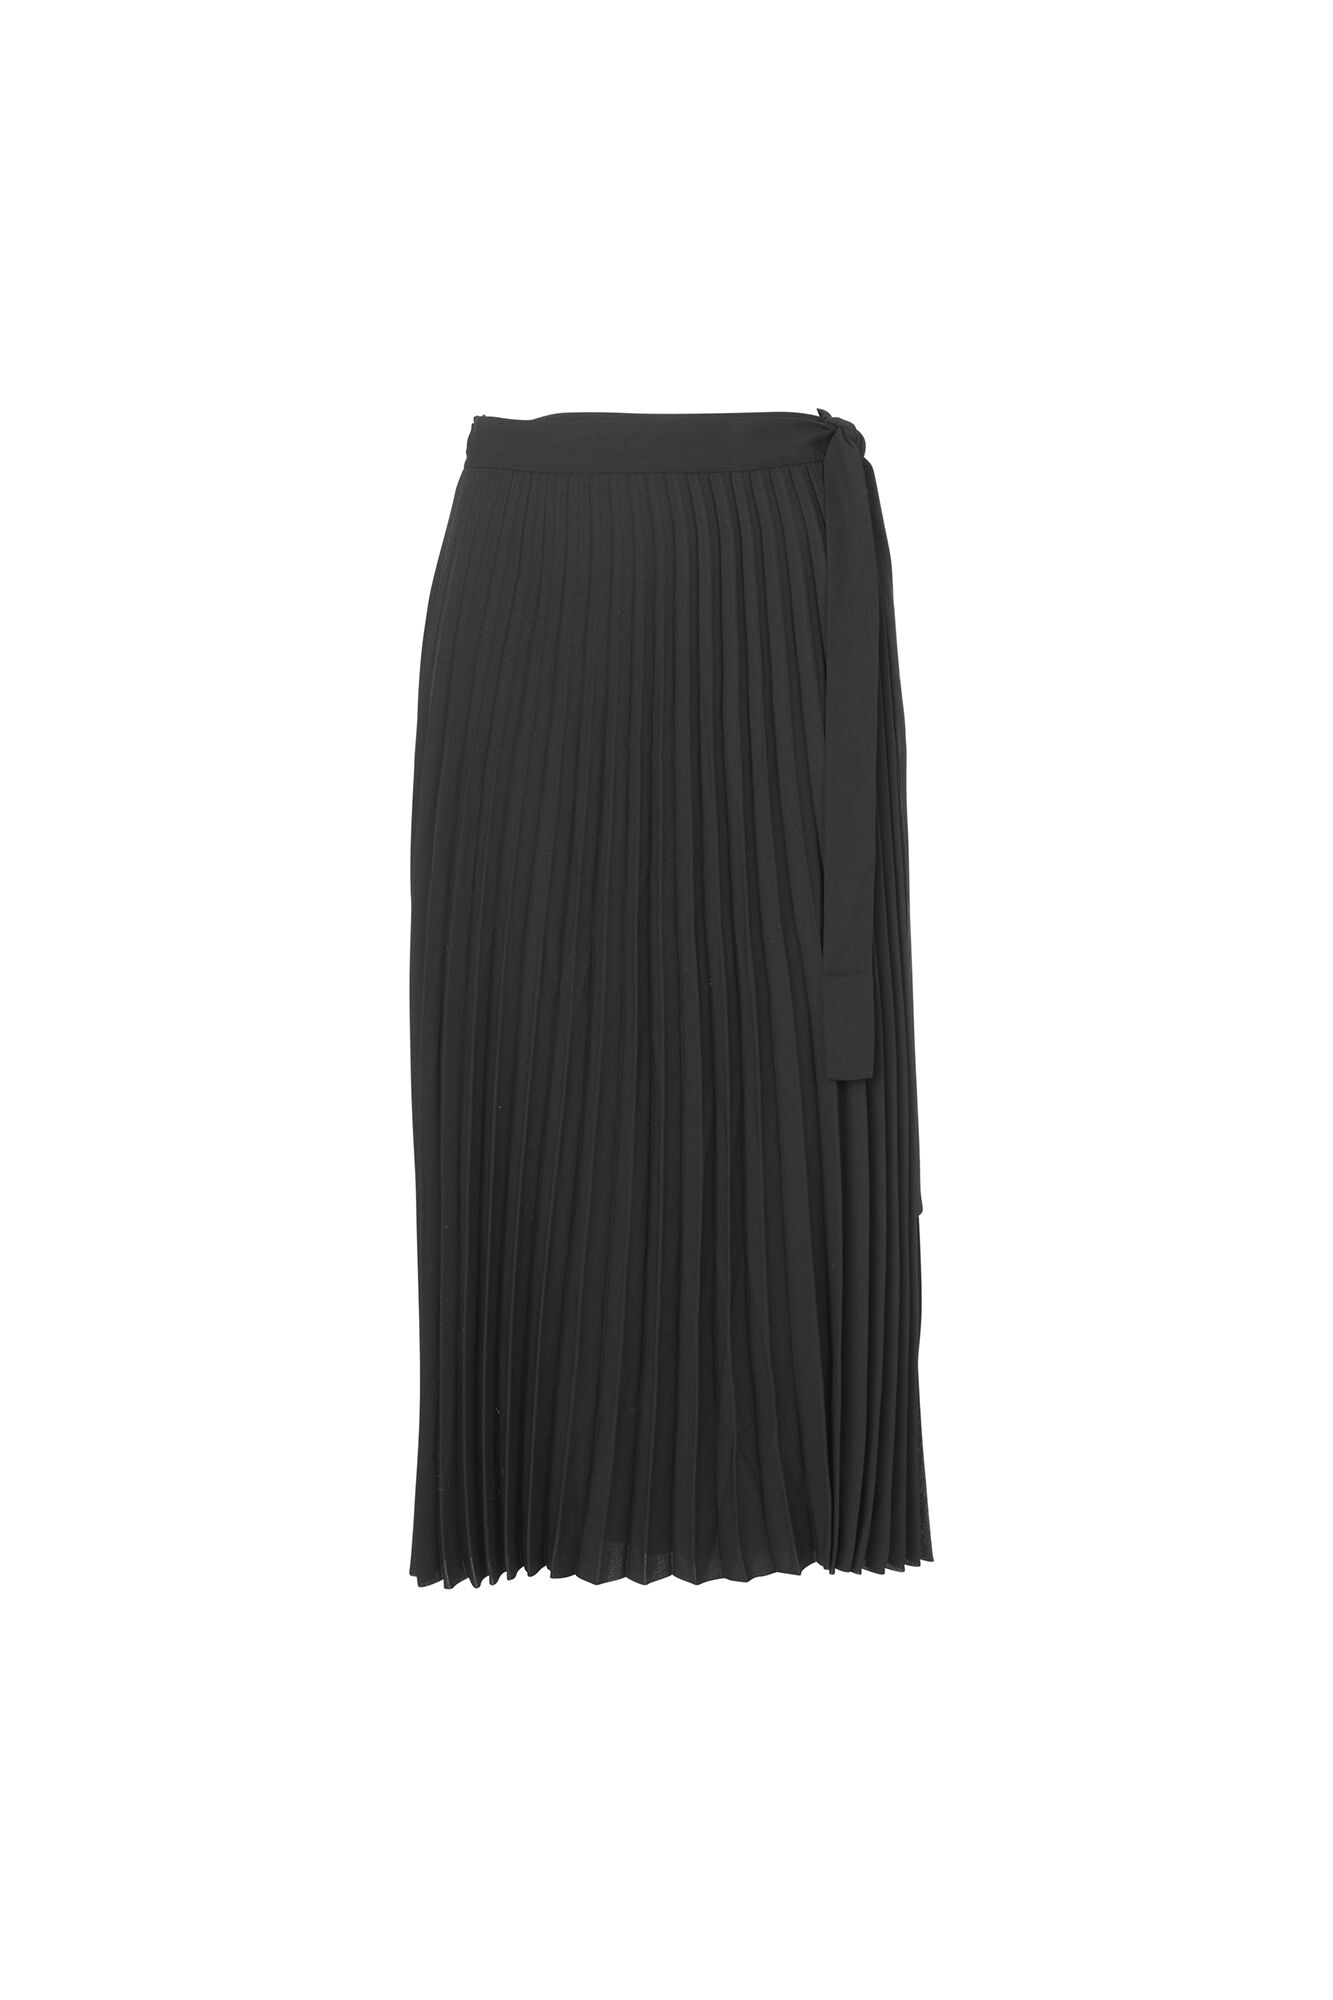 ENFULLERTON SKIRT 6611, BLACK